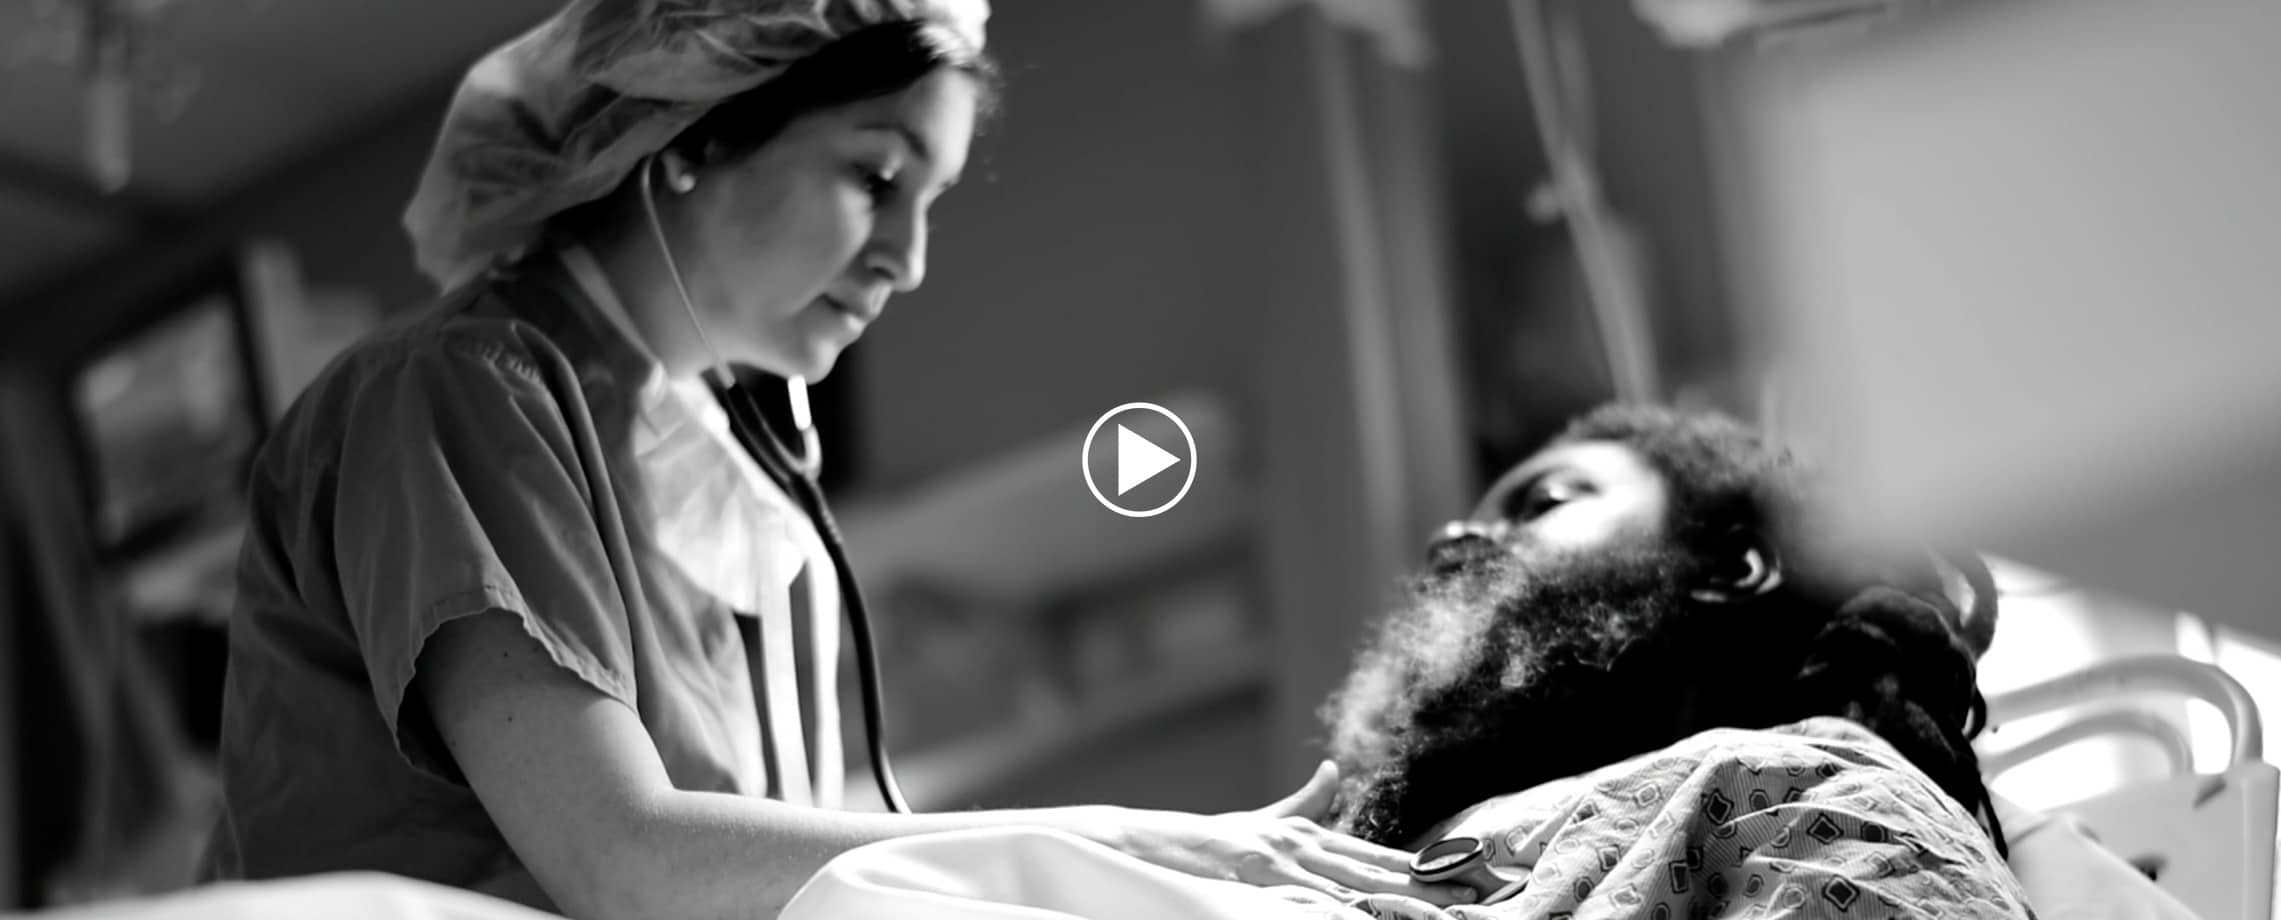 Video Frame of a Nurse taking care of a patient